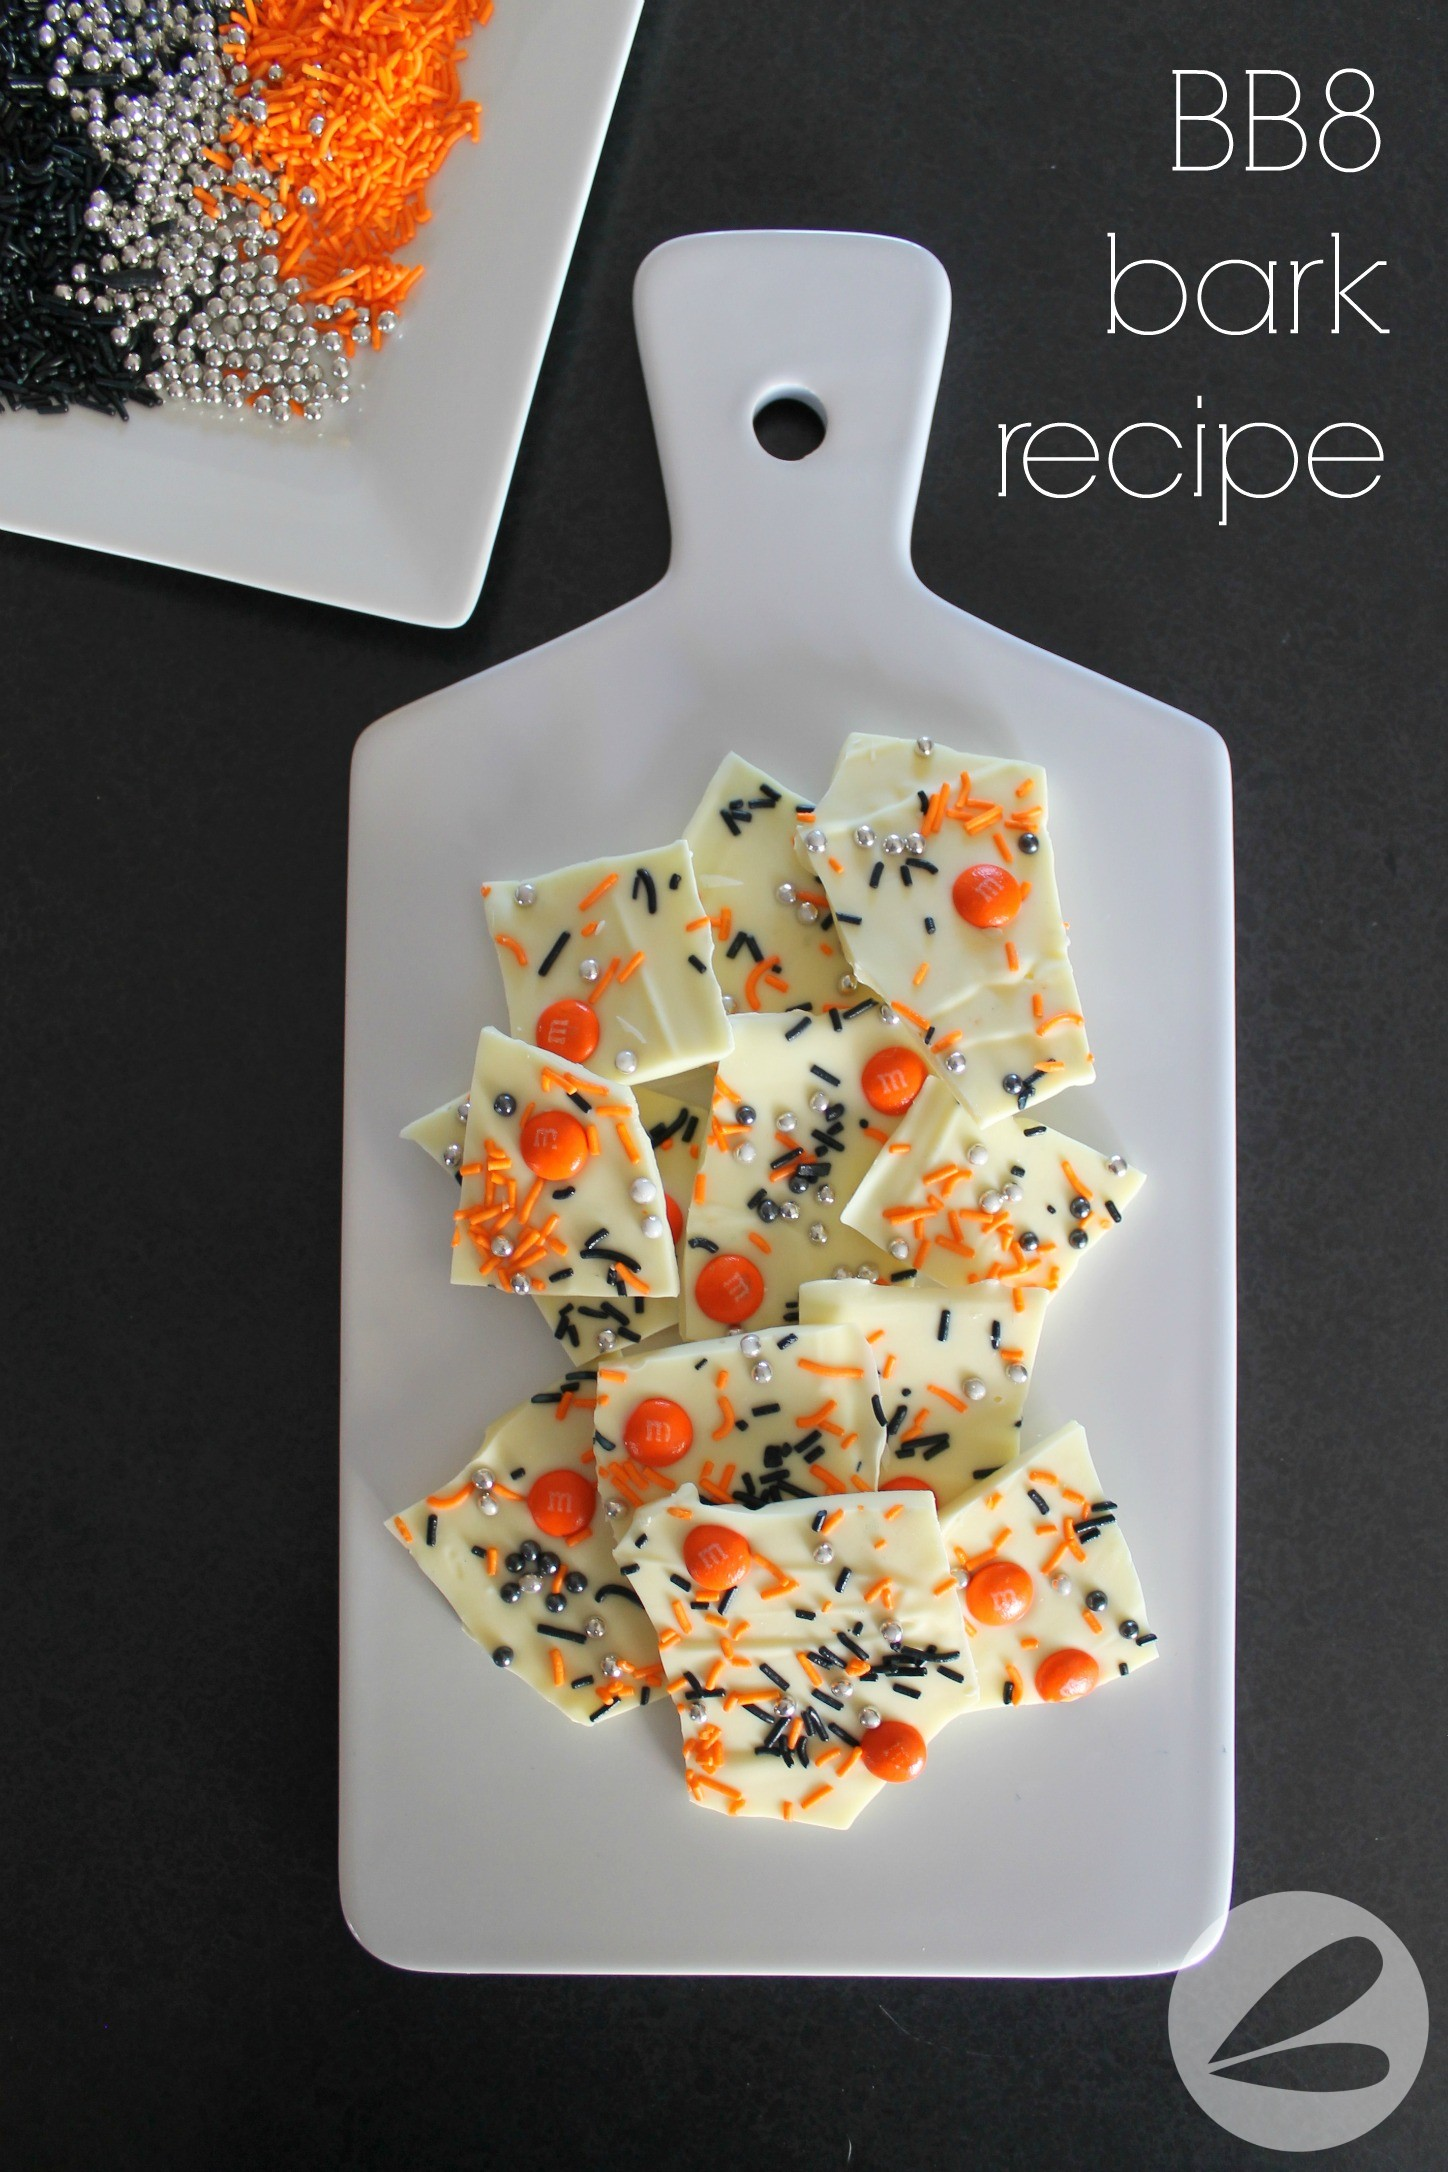 BB8 Bark Recipe